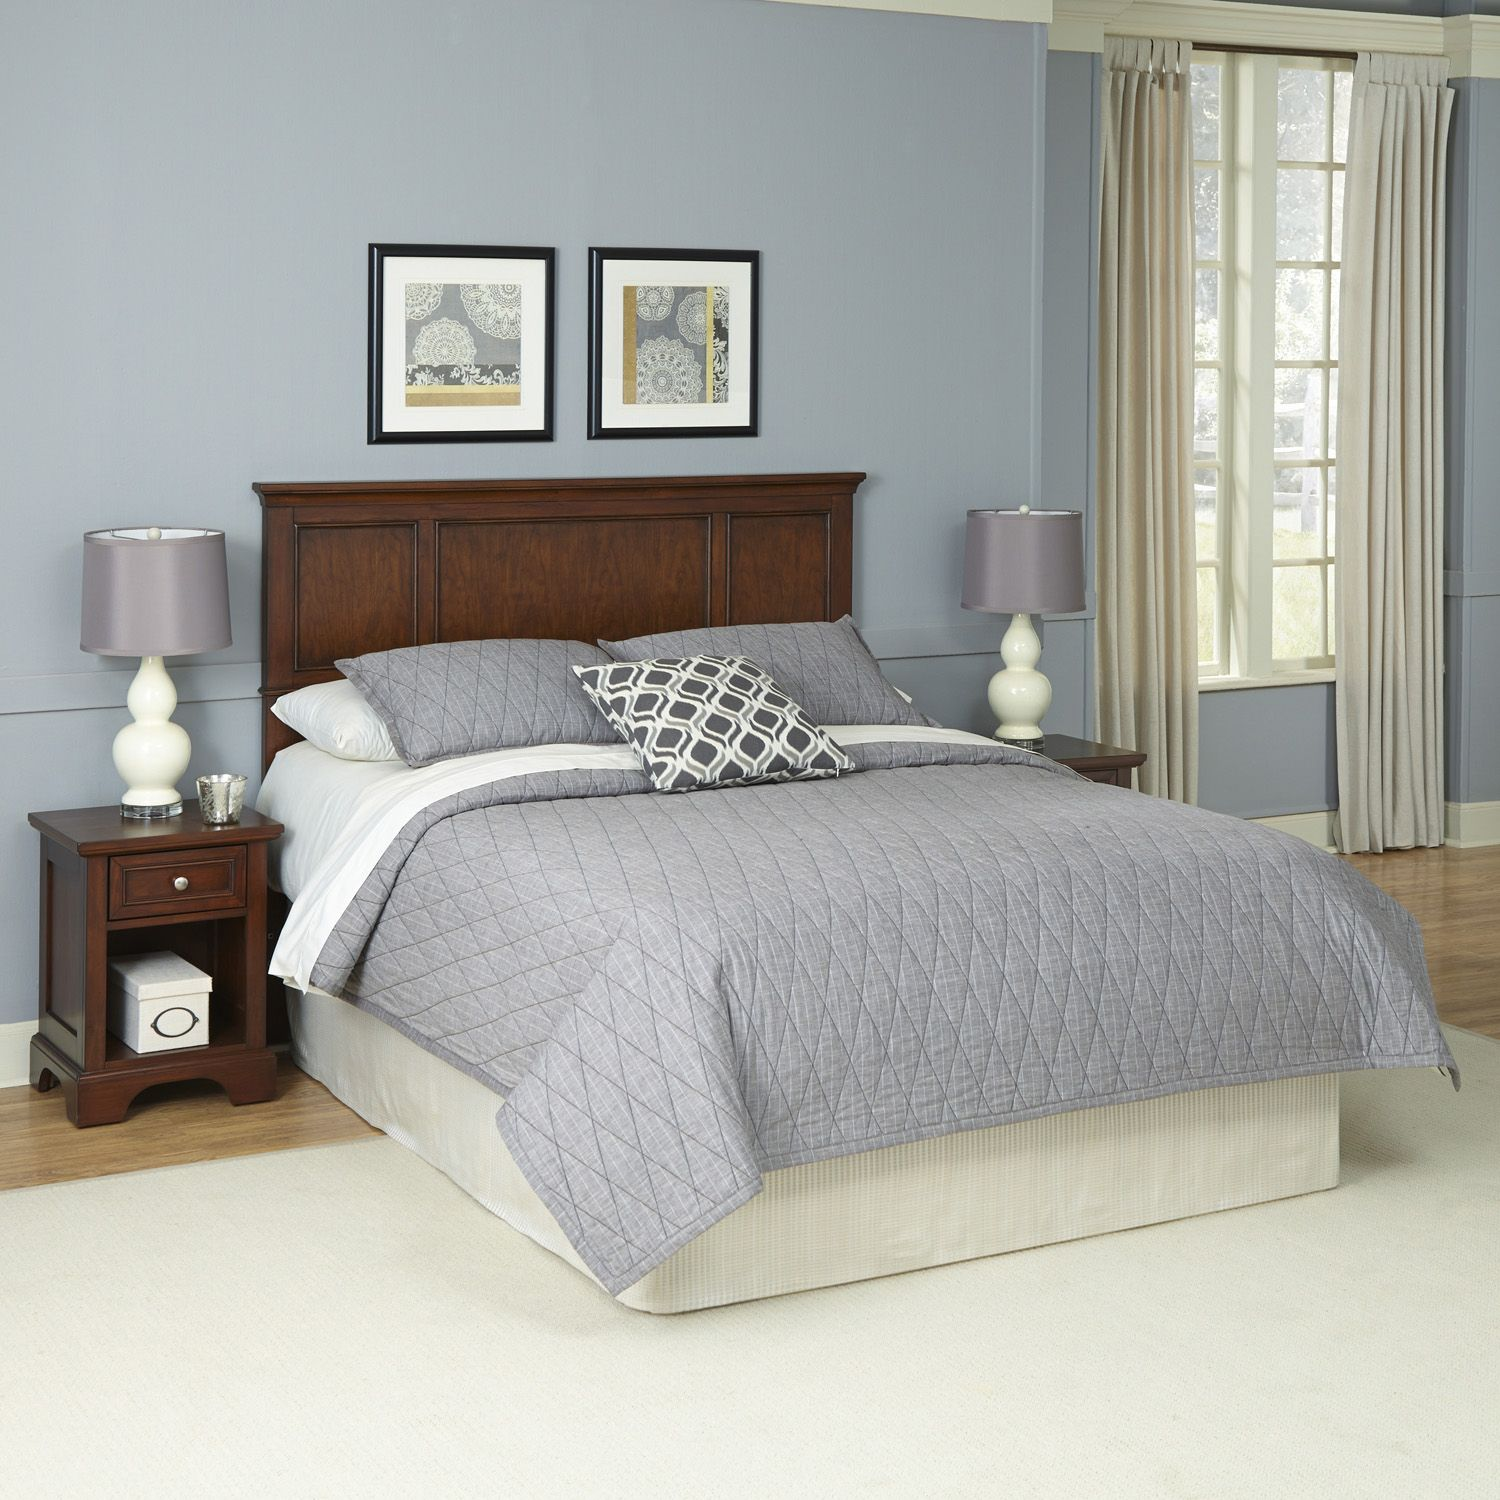 Spectacular Home Styles piece Chesapeake Headboard and Nightstand Set